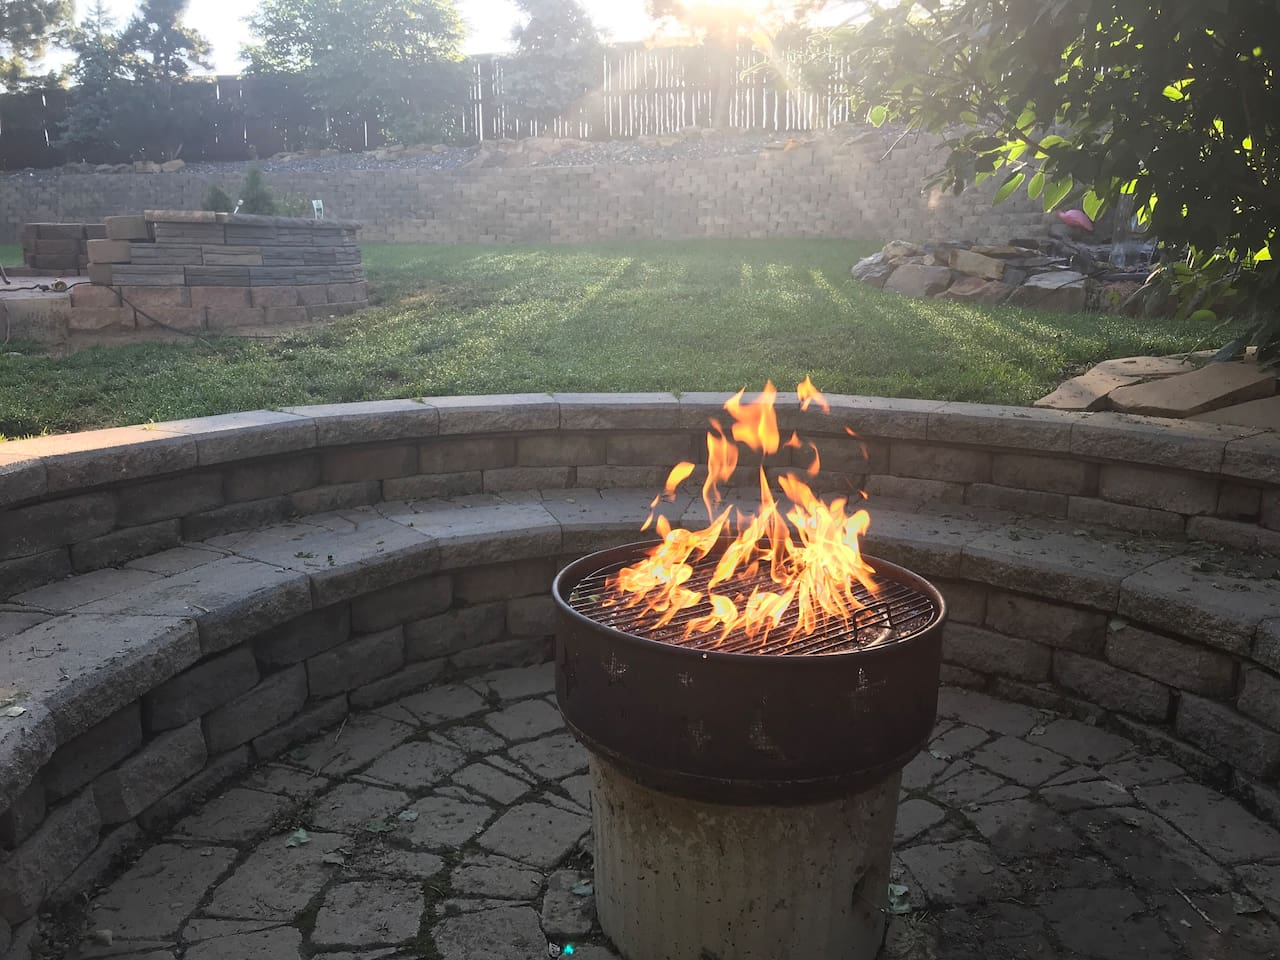 View from the giant natural gas fire pit.  It's great for gathering and making smores in the evening!